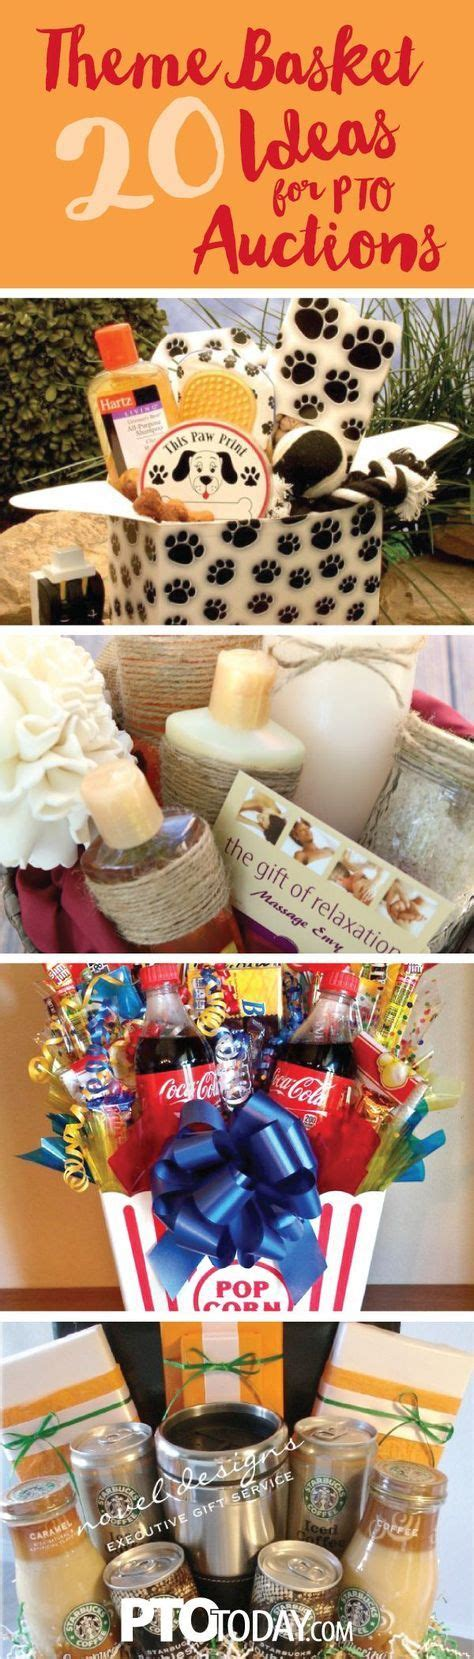 themed gifts for family gift basket theme ideas best 25 themed gift baskets ideas